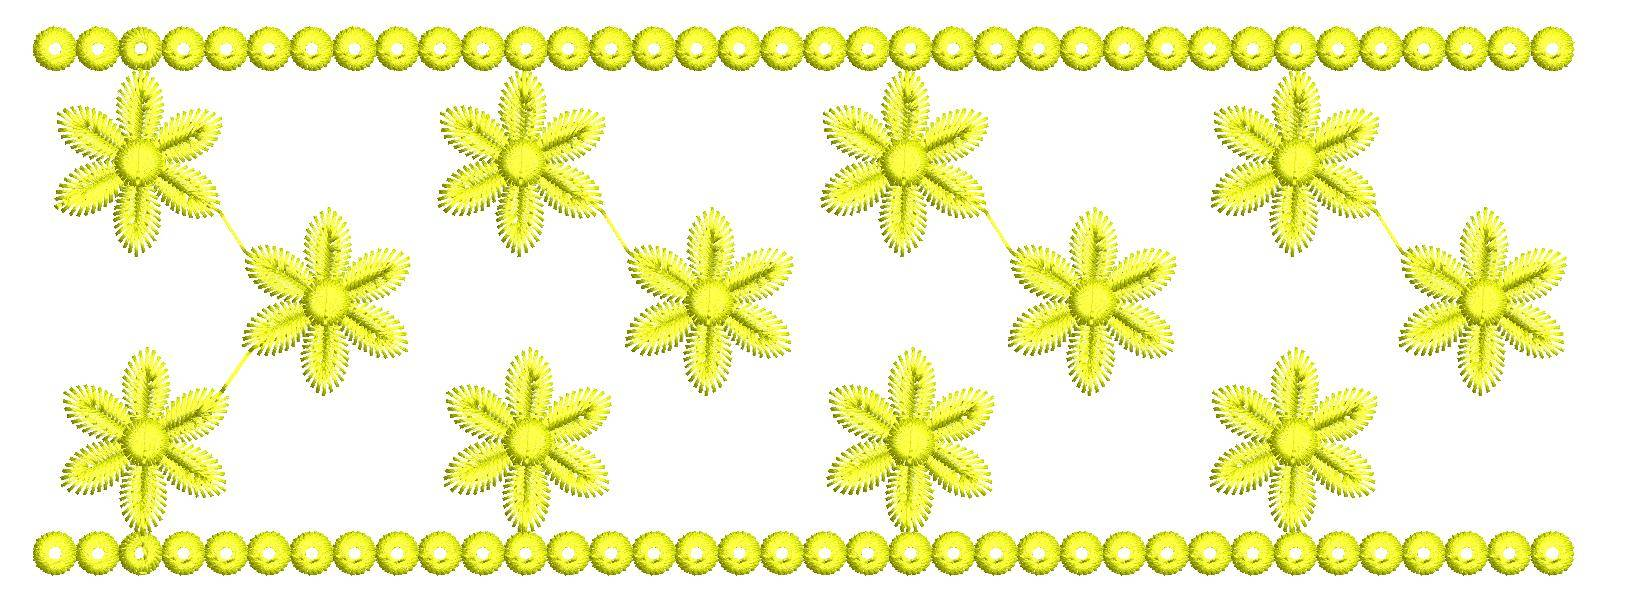 Flowers Embroidery Border Design